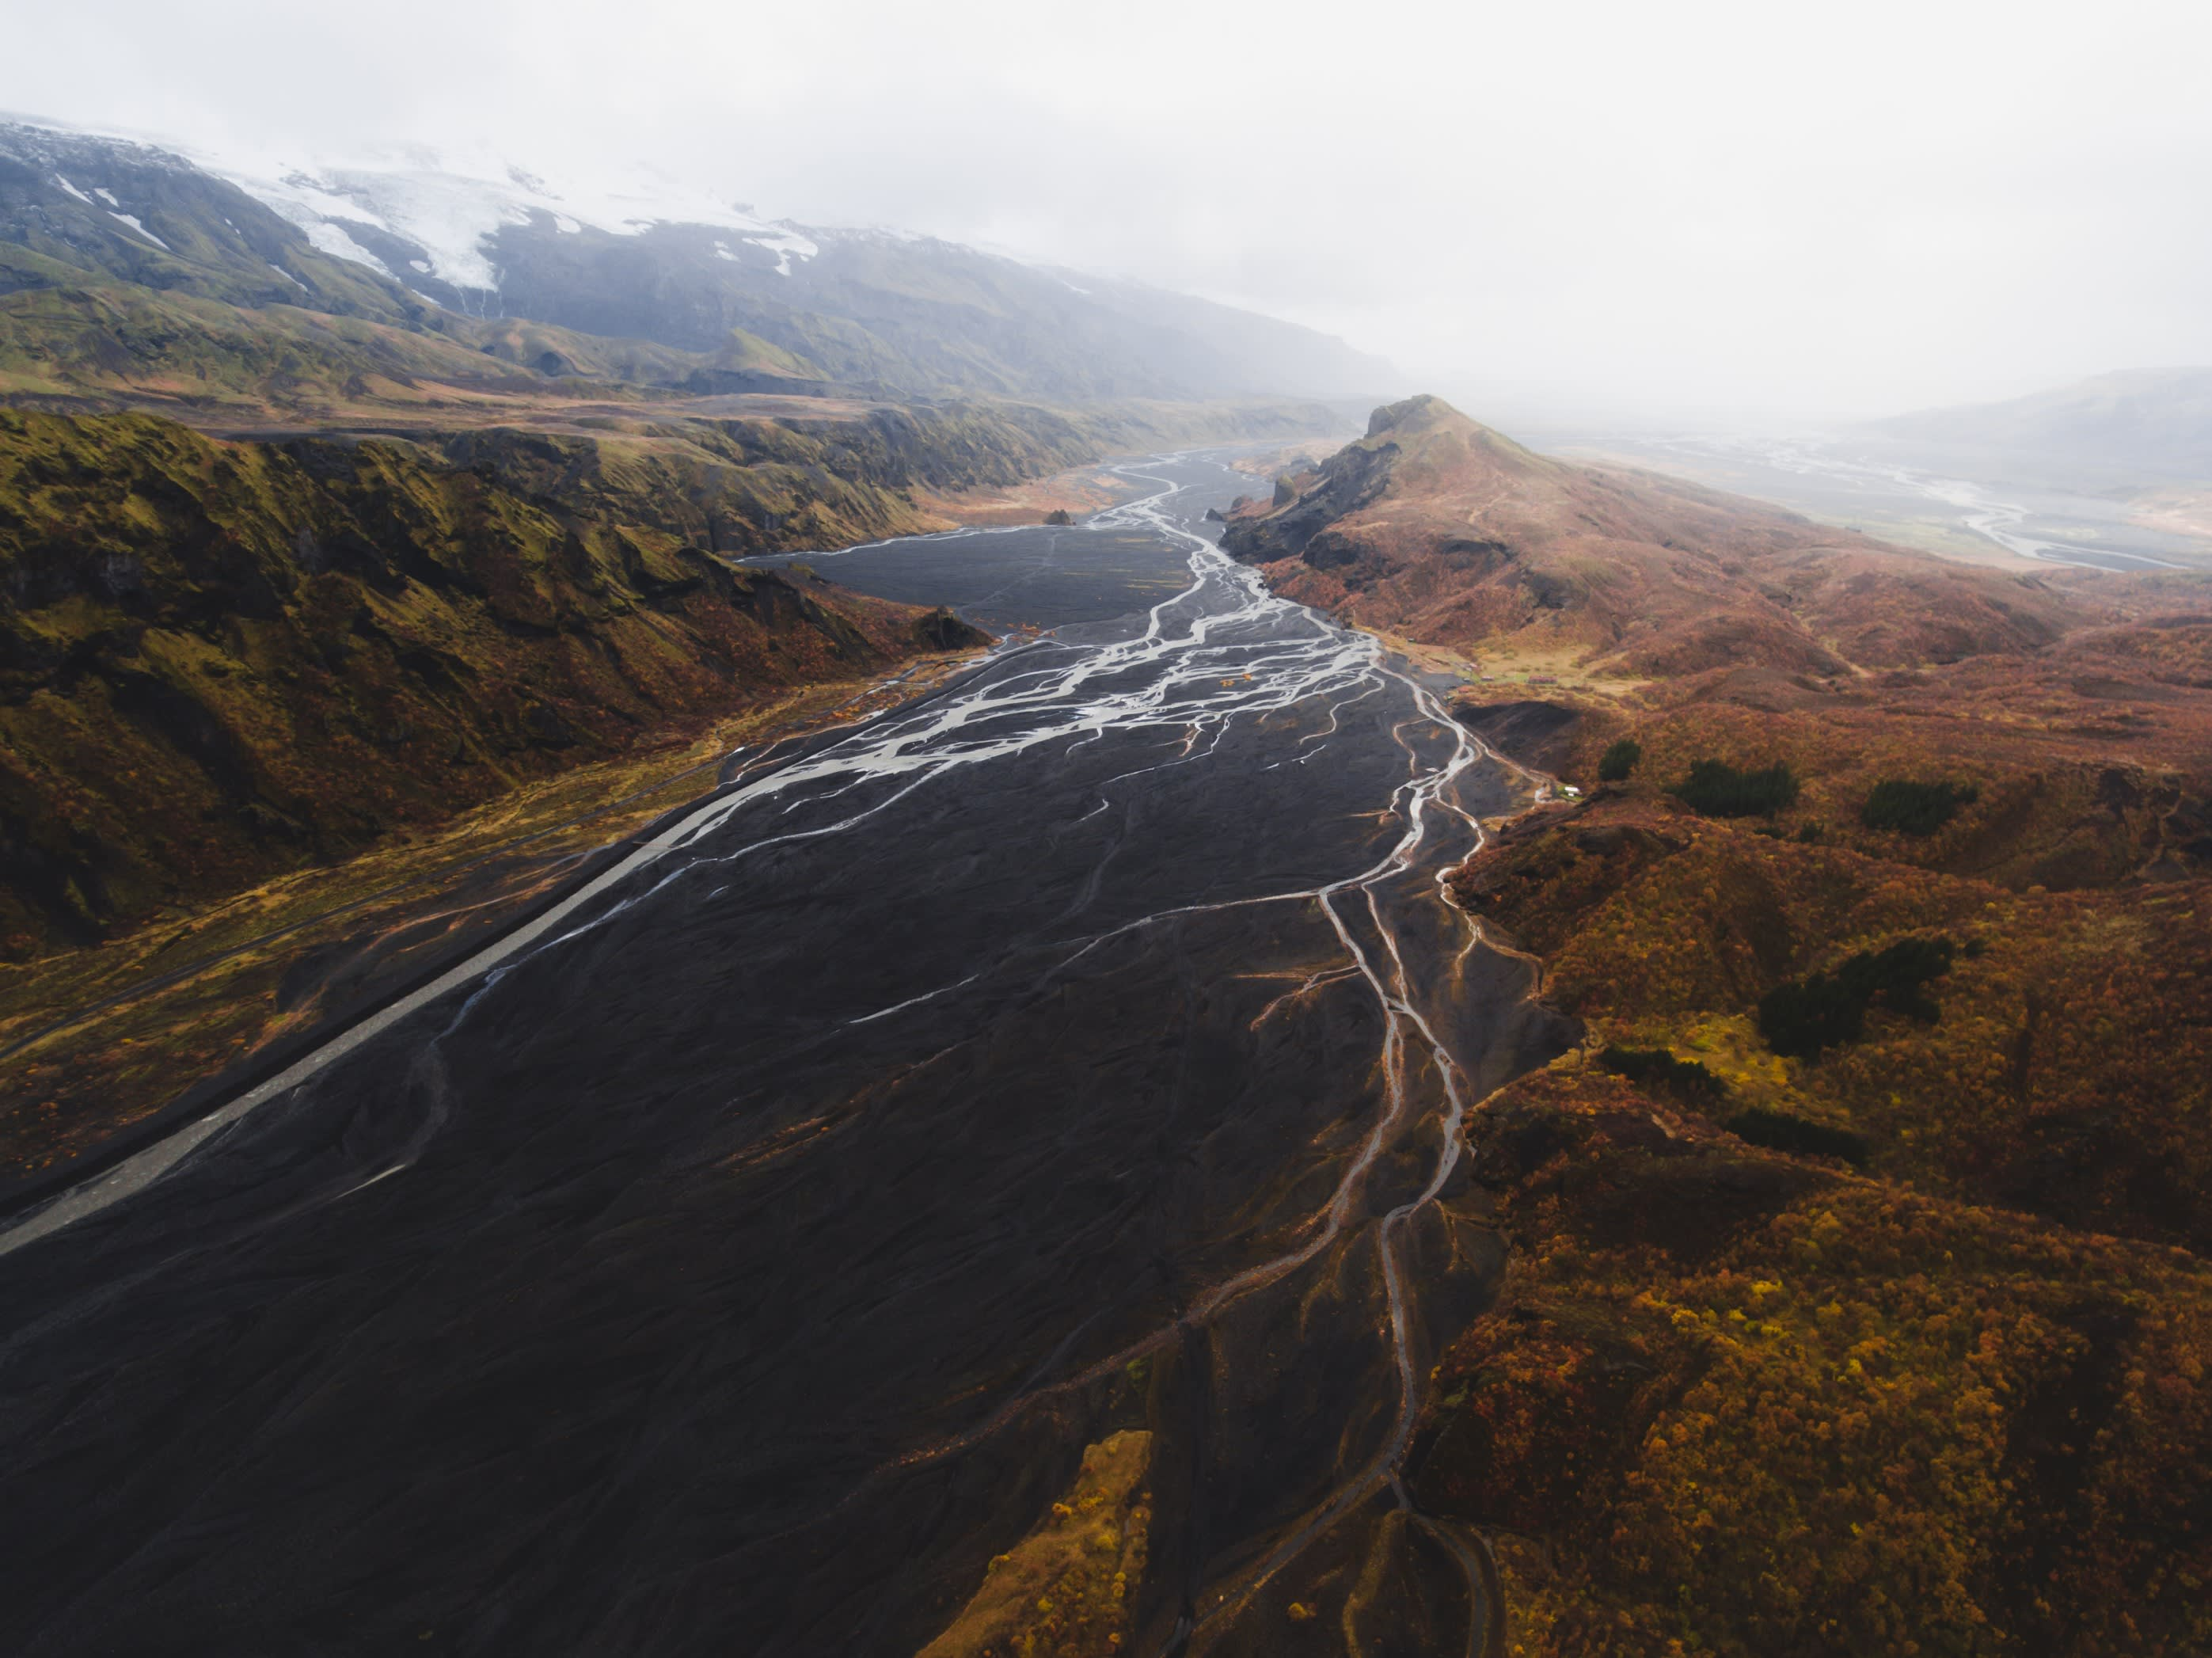 an aerial view of the mountains and glacier rivers at Langidalur and Valahnukur in Thorsmork, Iceland